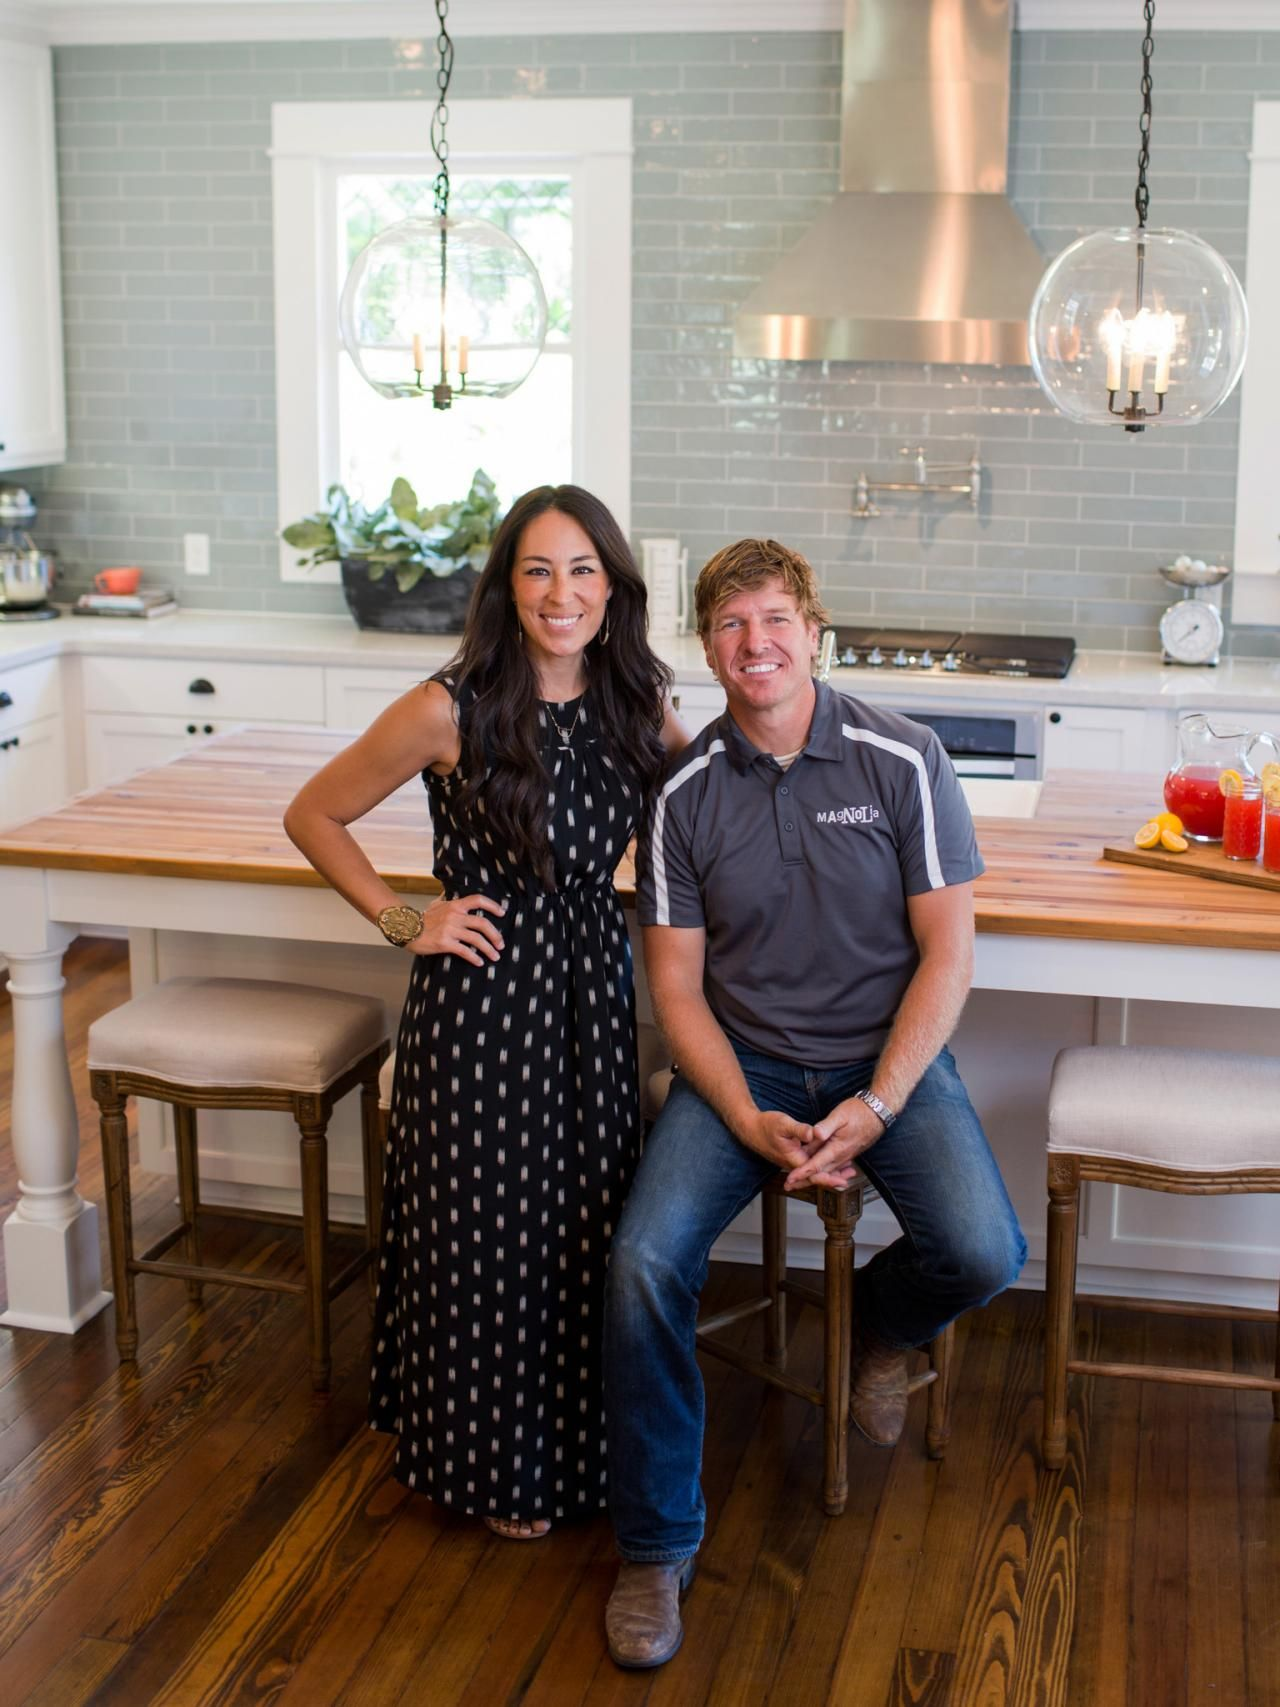 Fixer upper kitchen gallery - Fixer Upper Season Three Sneak Peek Gallery